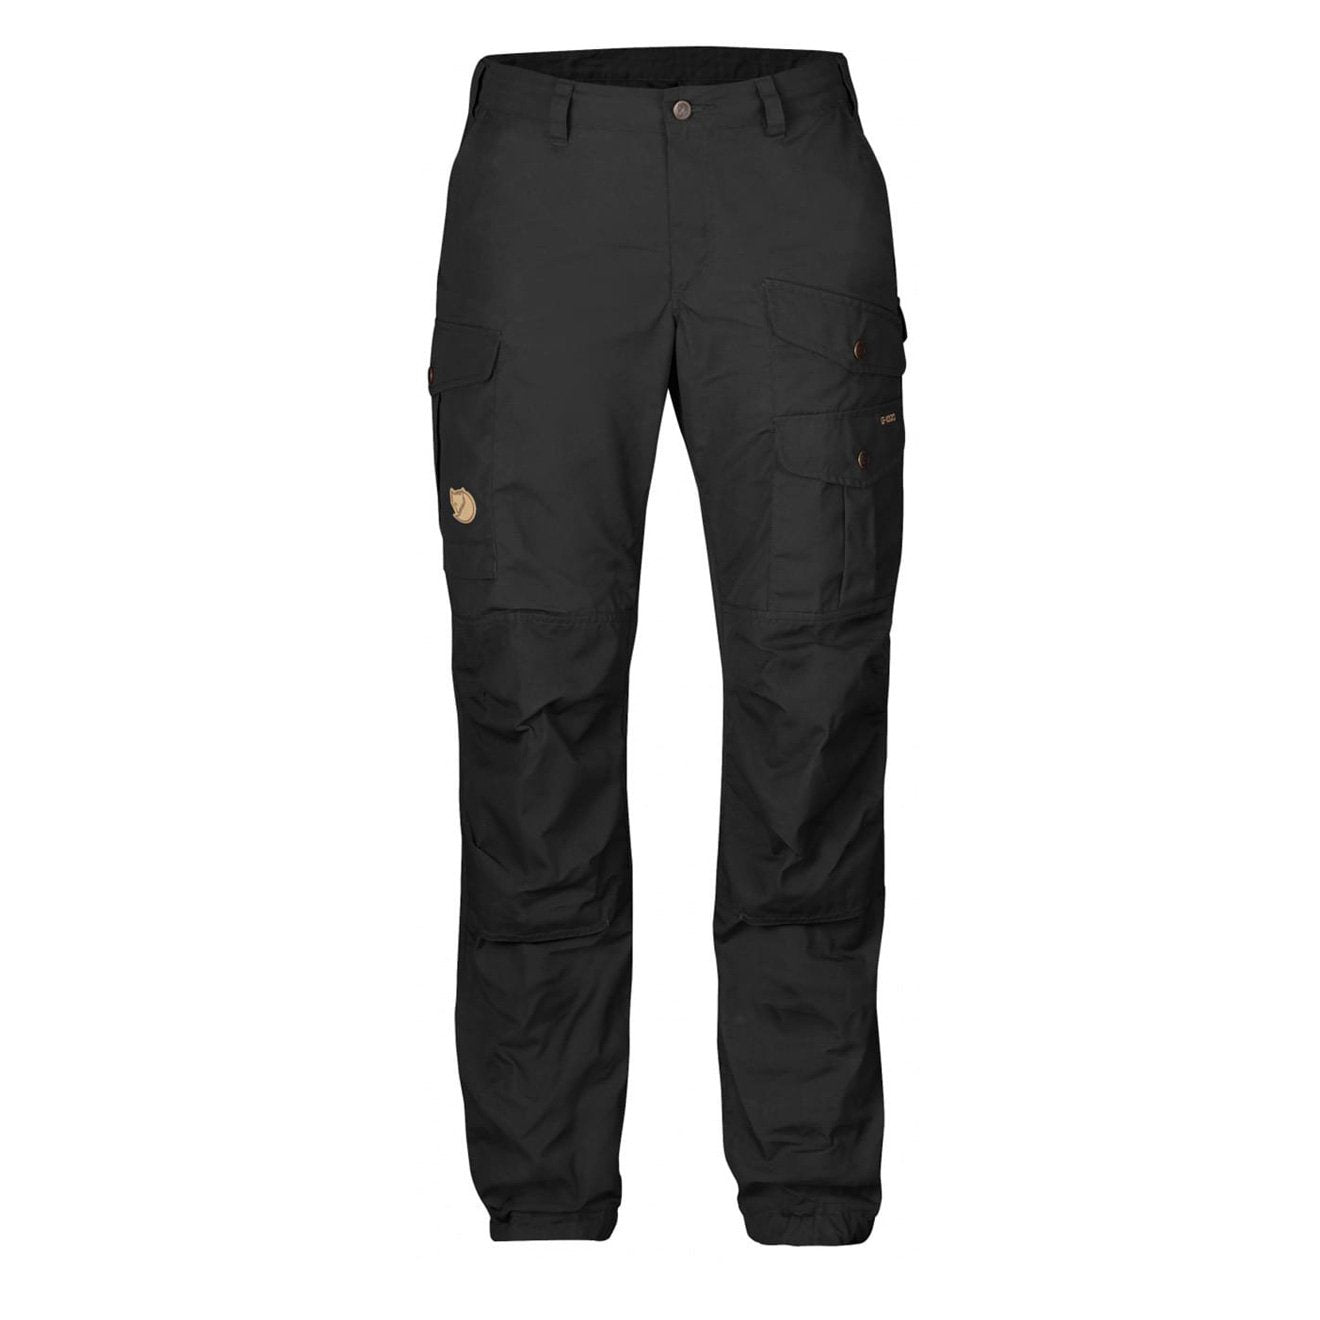 Fjallraven Womens Vidda Pro Trousers Black Black Regular